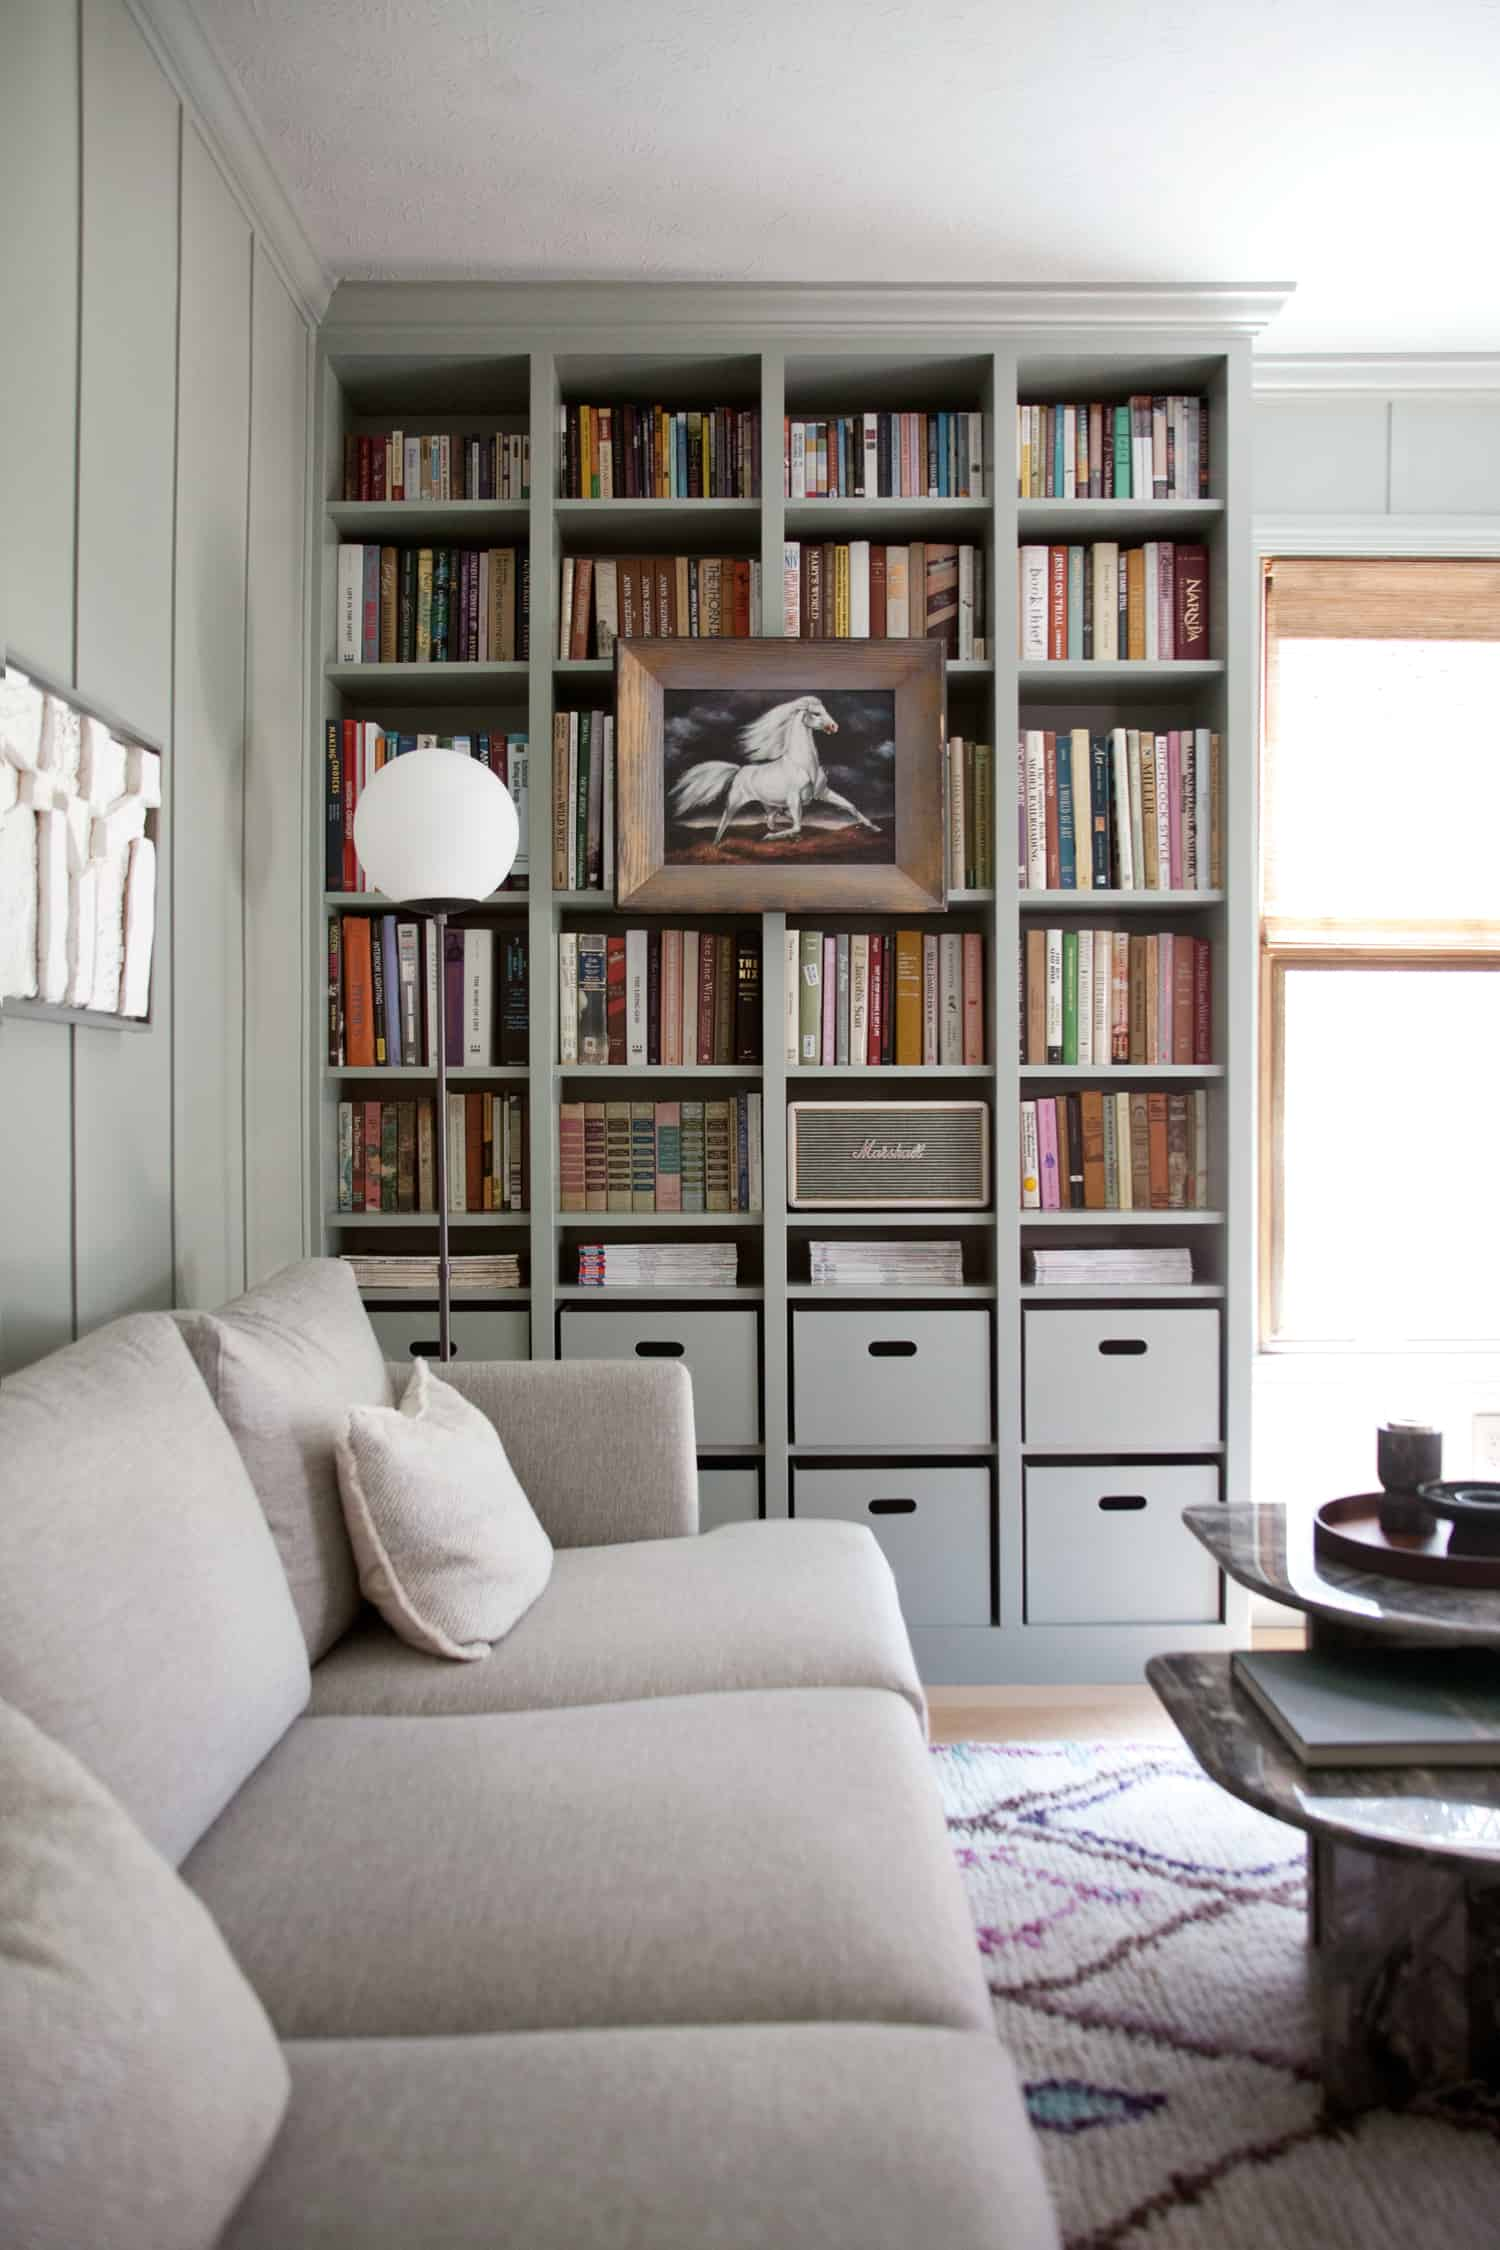 diy built in bookshelves ikea billy bookcase hack - Ikea Billy Bookshelves